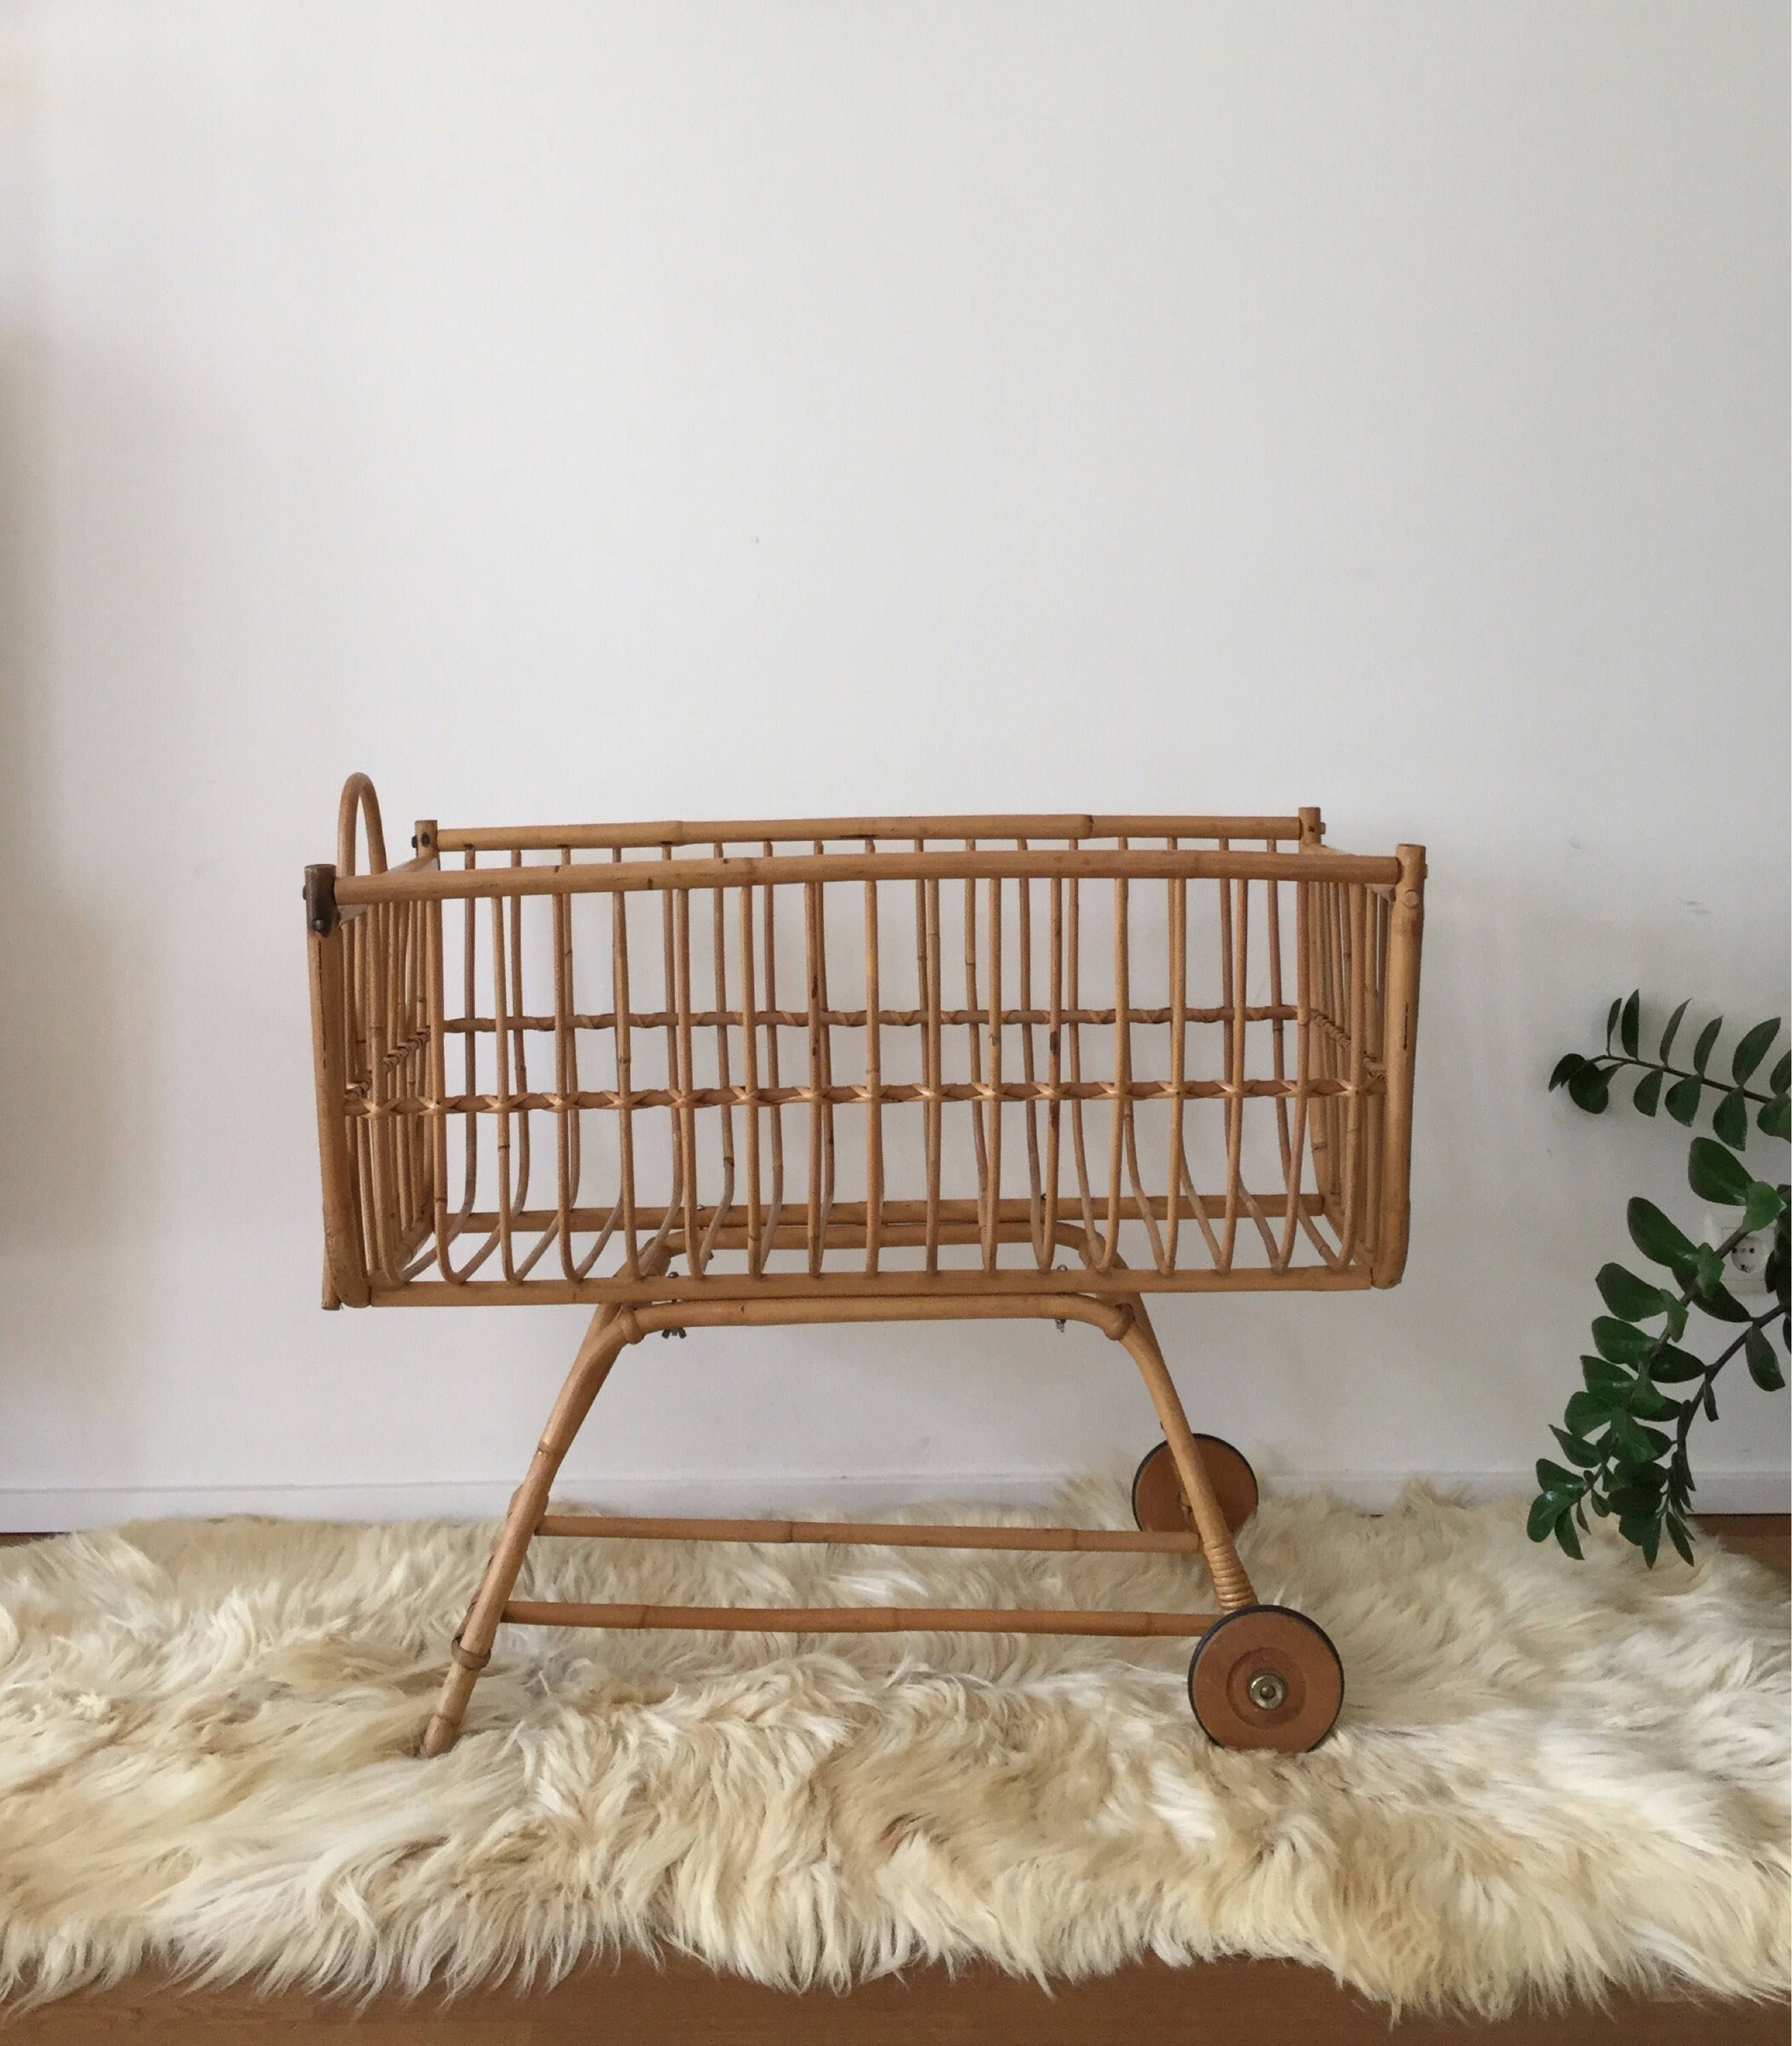 Mid Century 60s Baby Bed Parlour Cart Cradle Made Of Rattan Bamboo